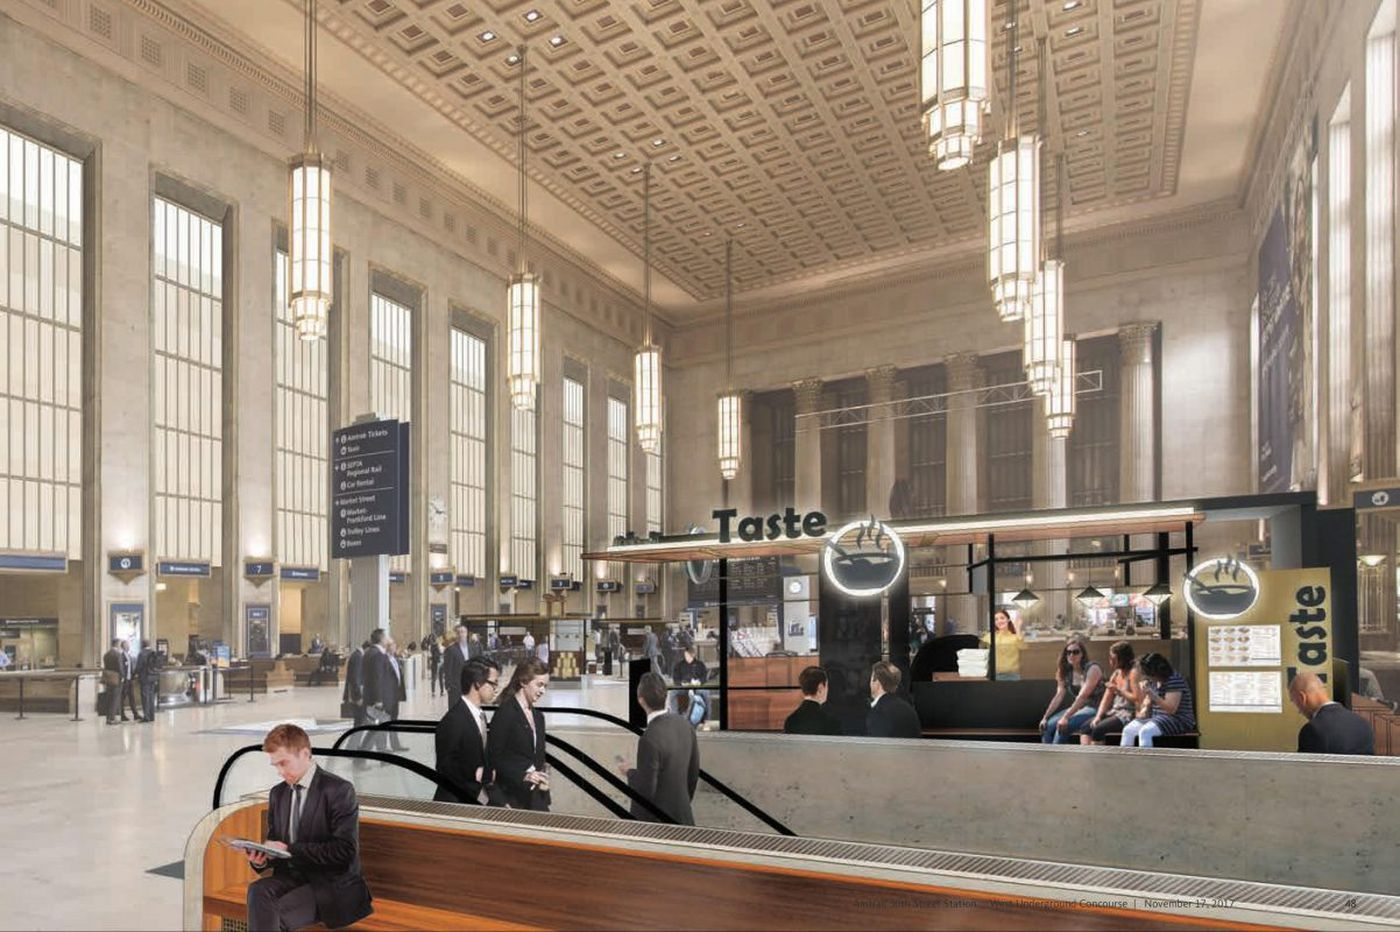 Amtrak resumes search for 30th St. development overseer with focus on shops, restaurants at station